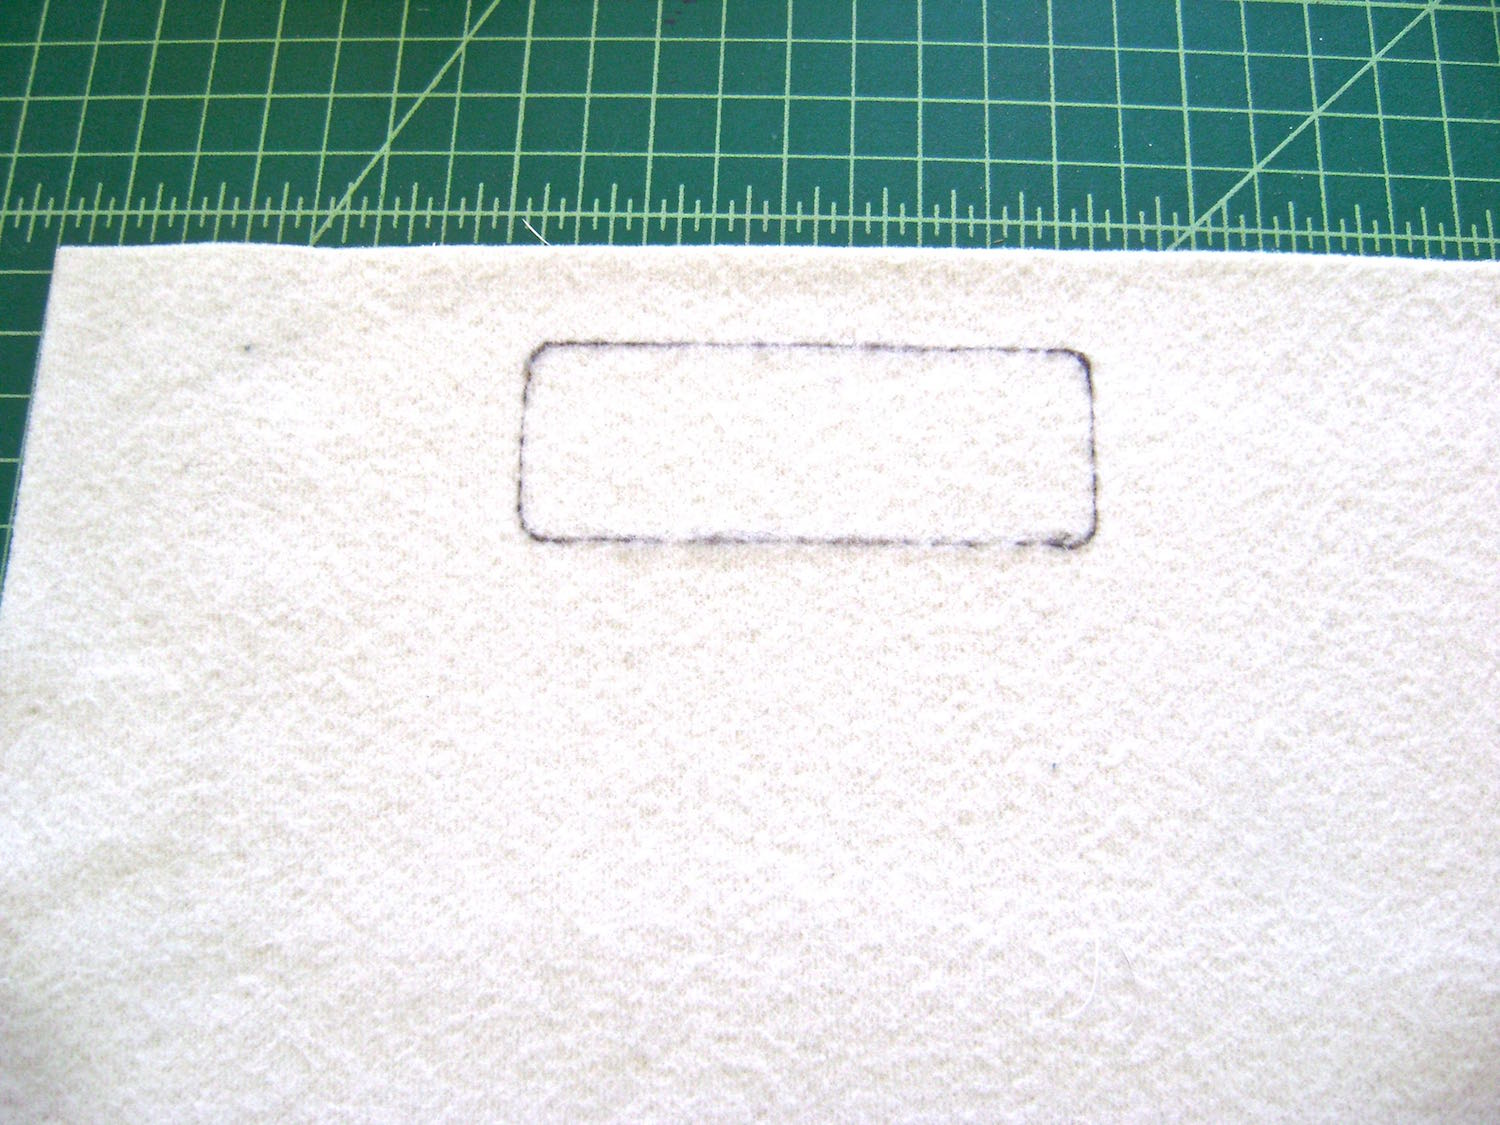 """step 6 - On the vinyl's wrong side, roughly draw the outside edges of the pattern's stitching line to determine it's placement. The pattern's stitching line should be placed 1.75"""" from the top edge of the vinyl with the centers aligned. Cover the marked area with fusible hem tape strips. Place the vinyl facing down with the top and side edges aligned to the front piece."""